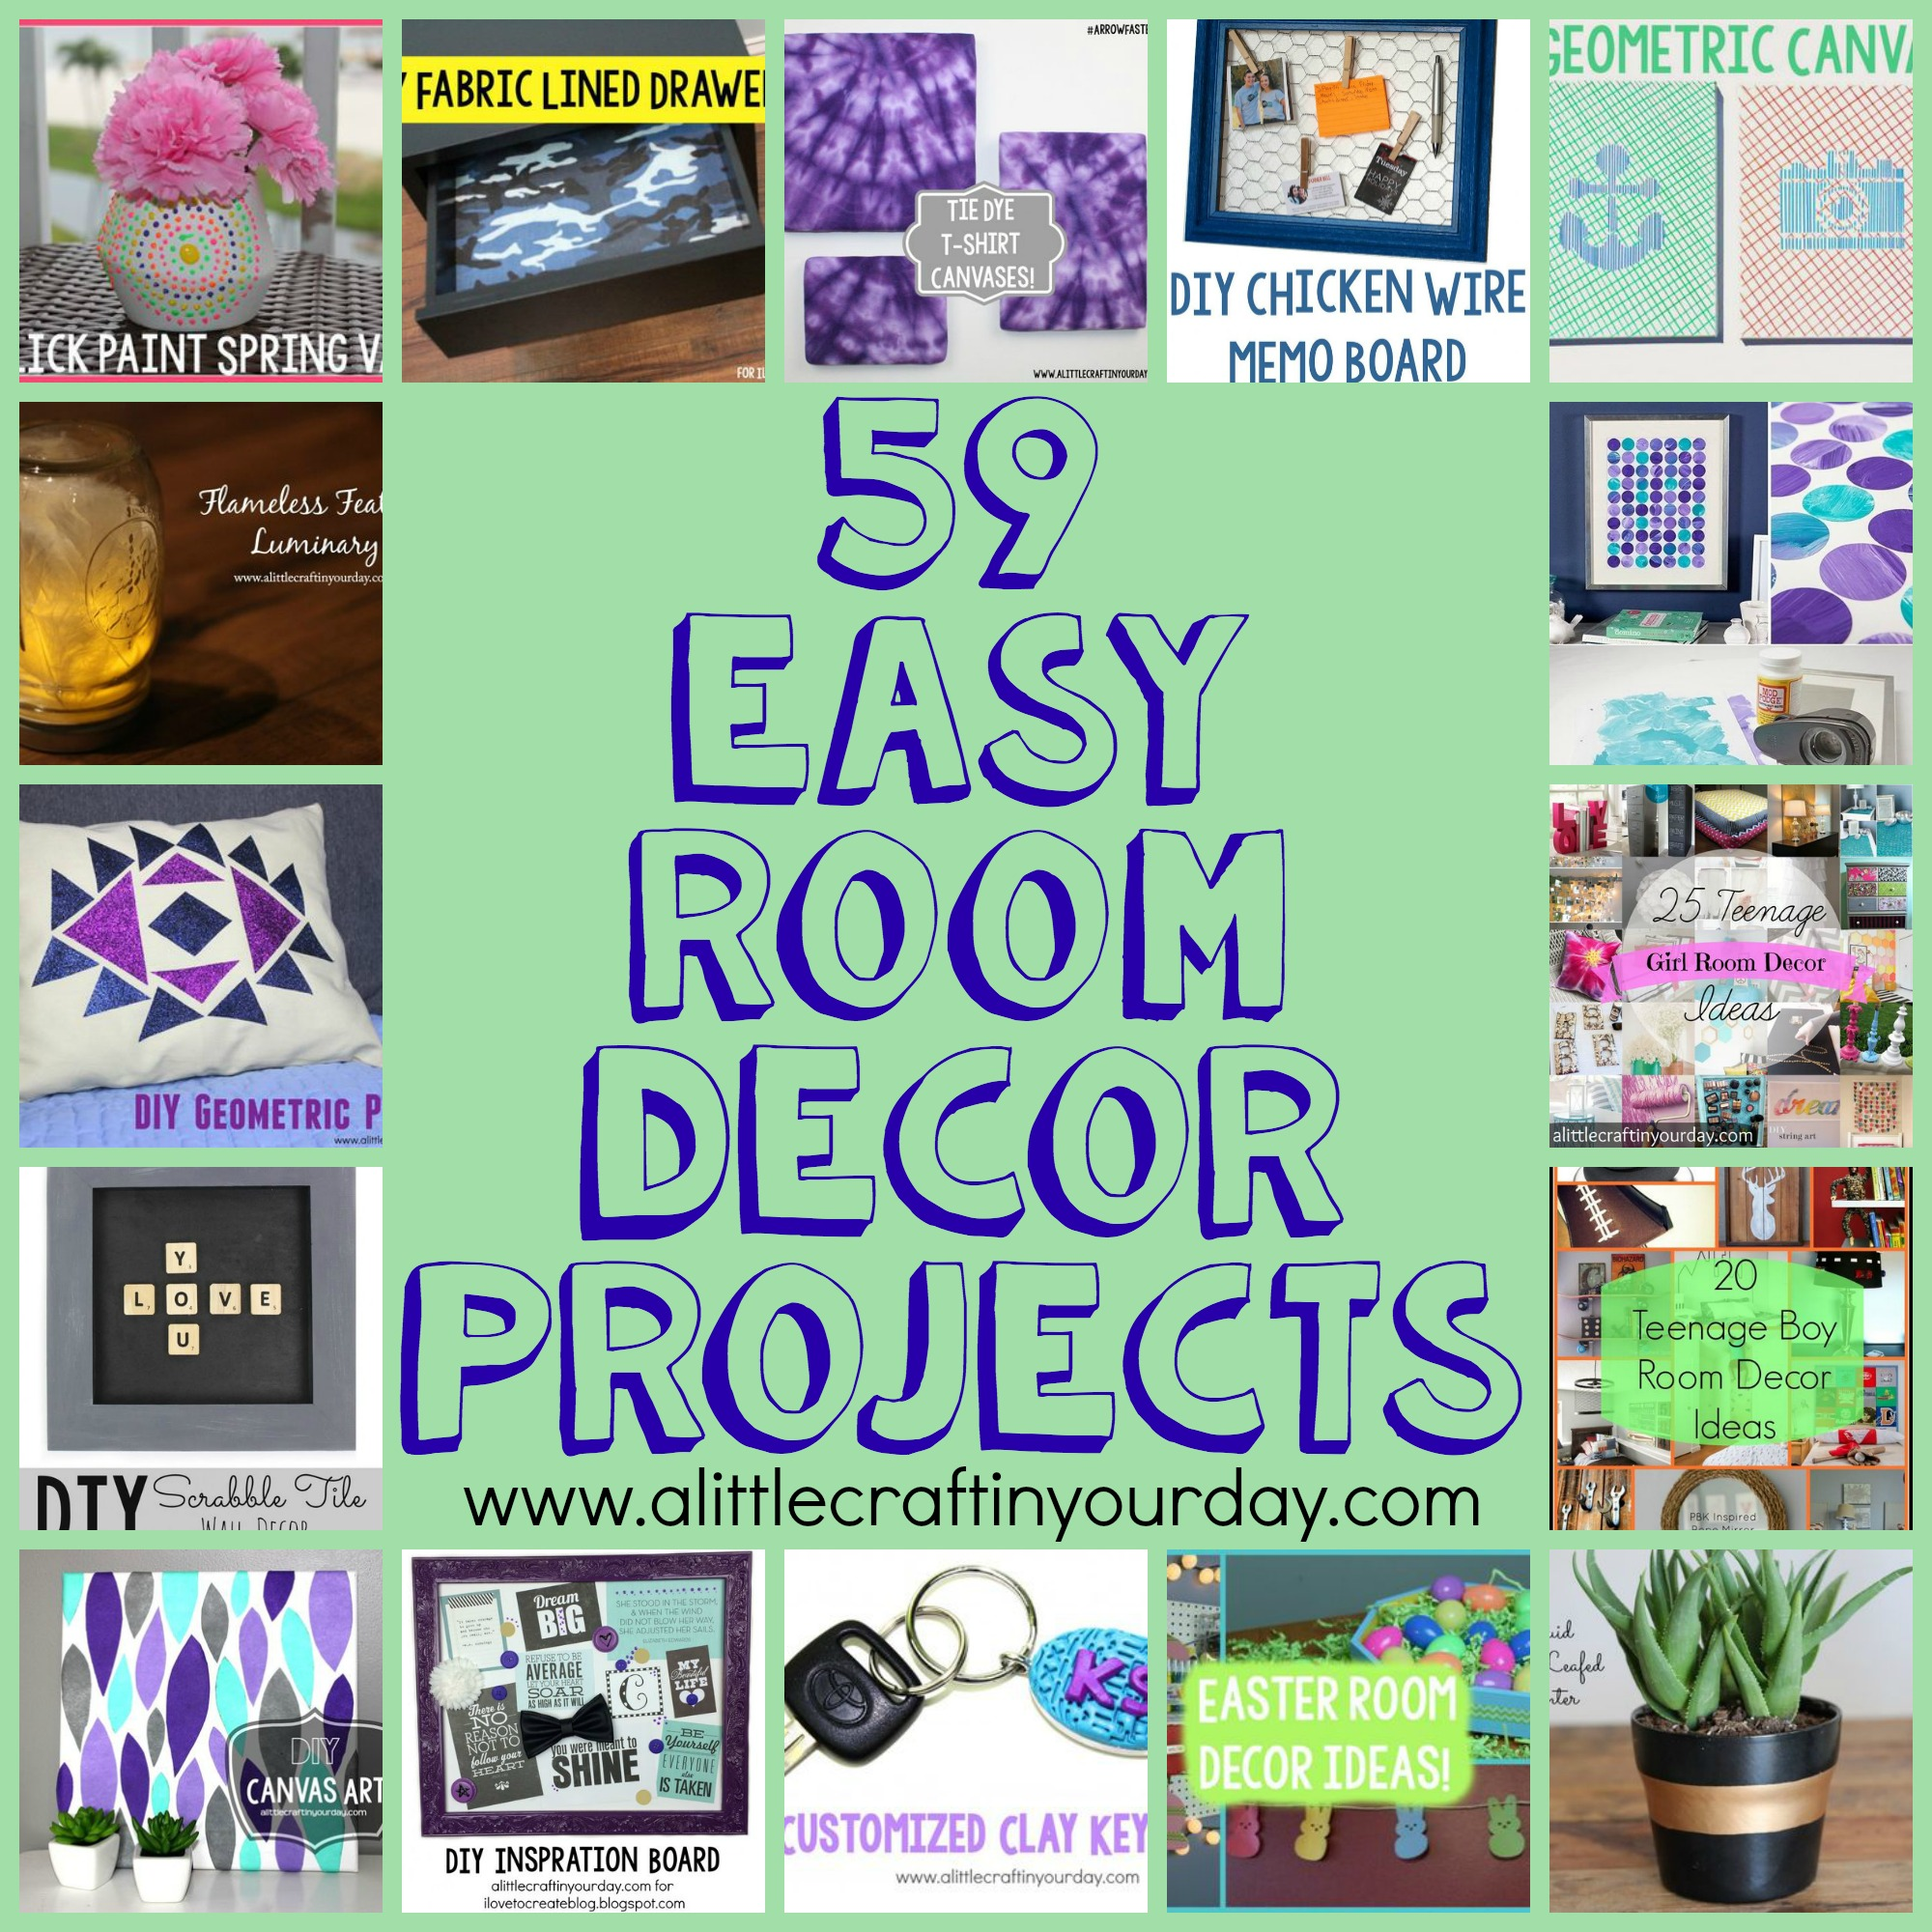 3/31 | 59 Easy DIY Room Decor Projects